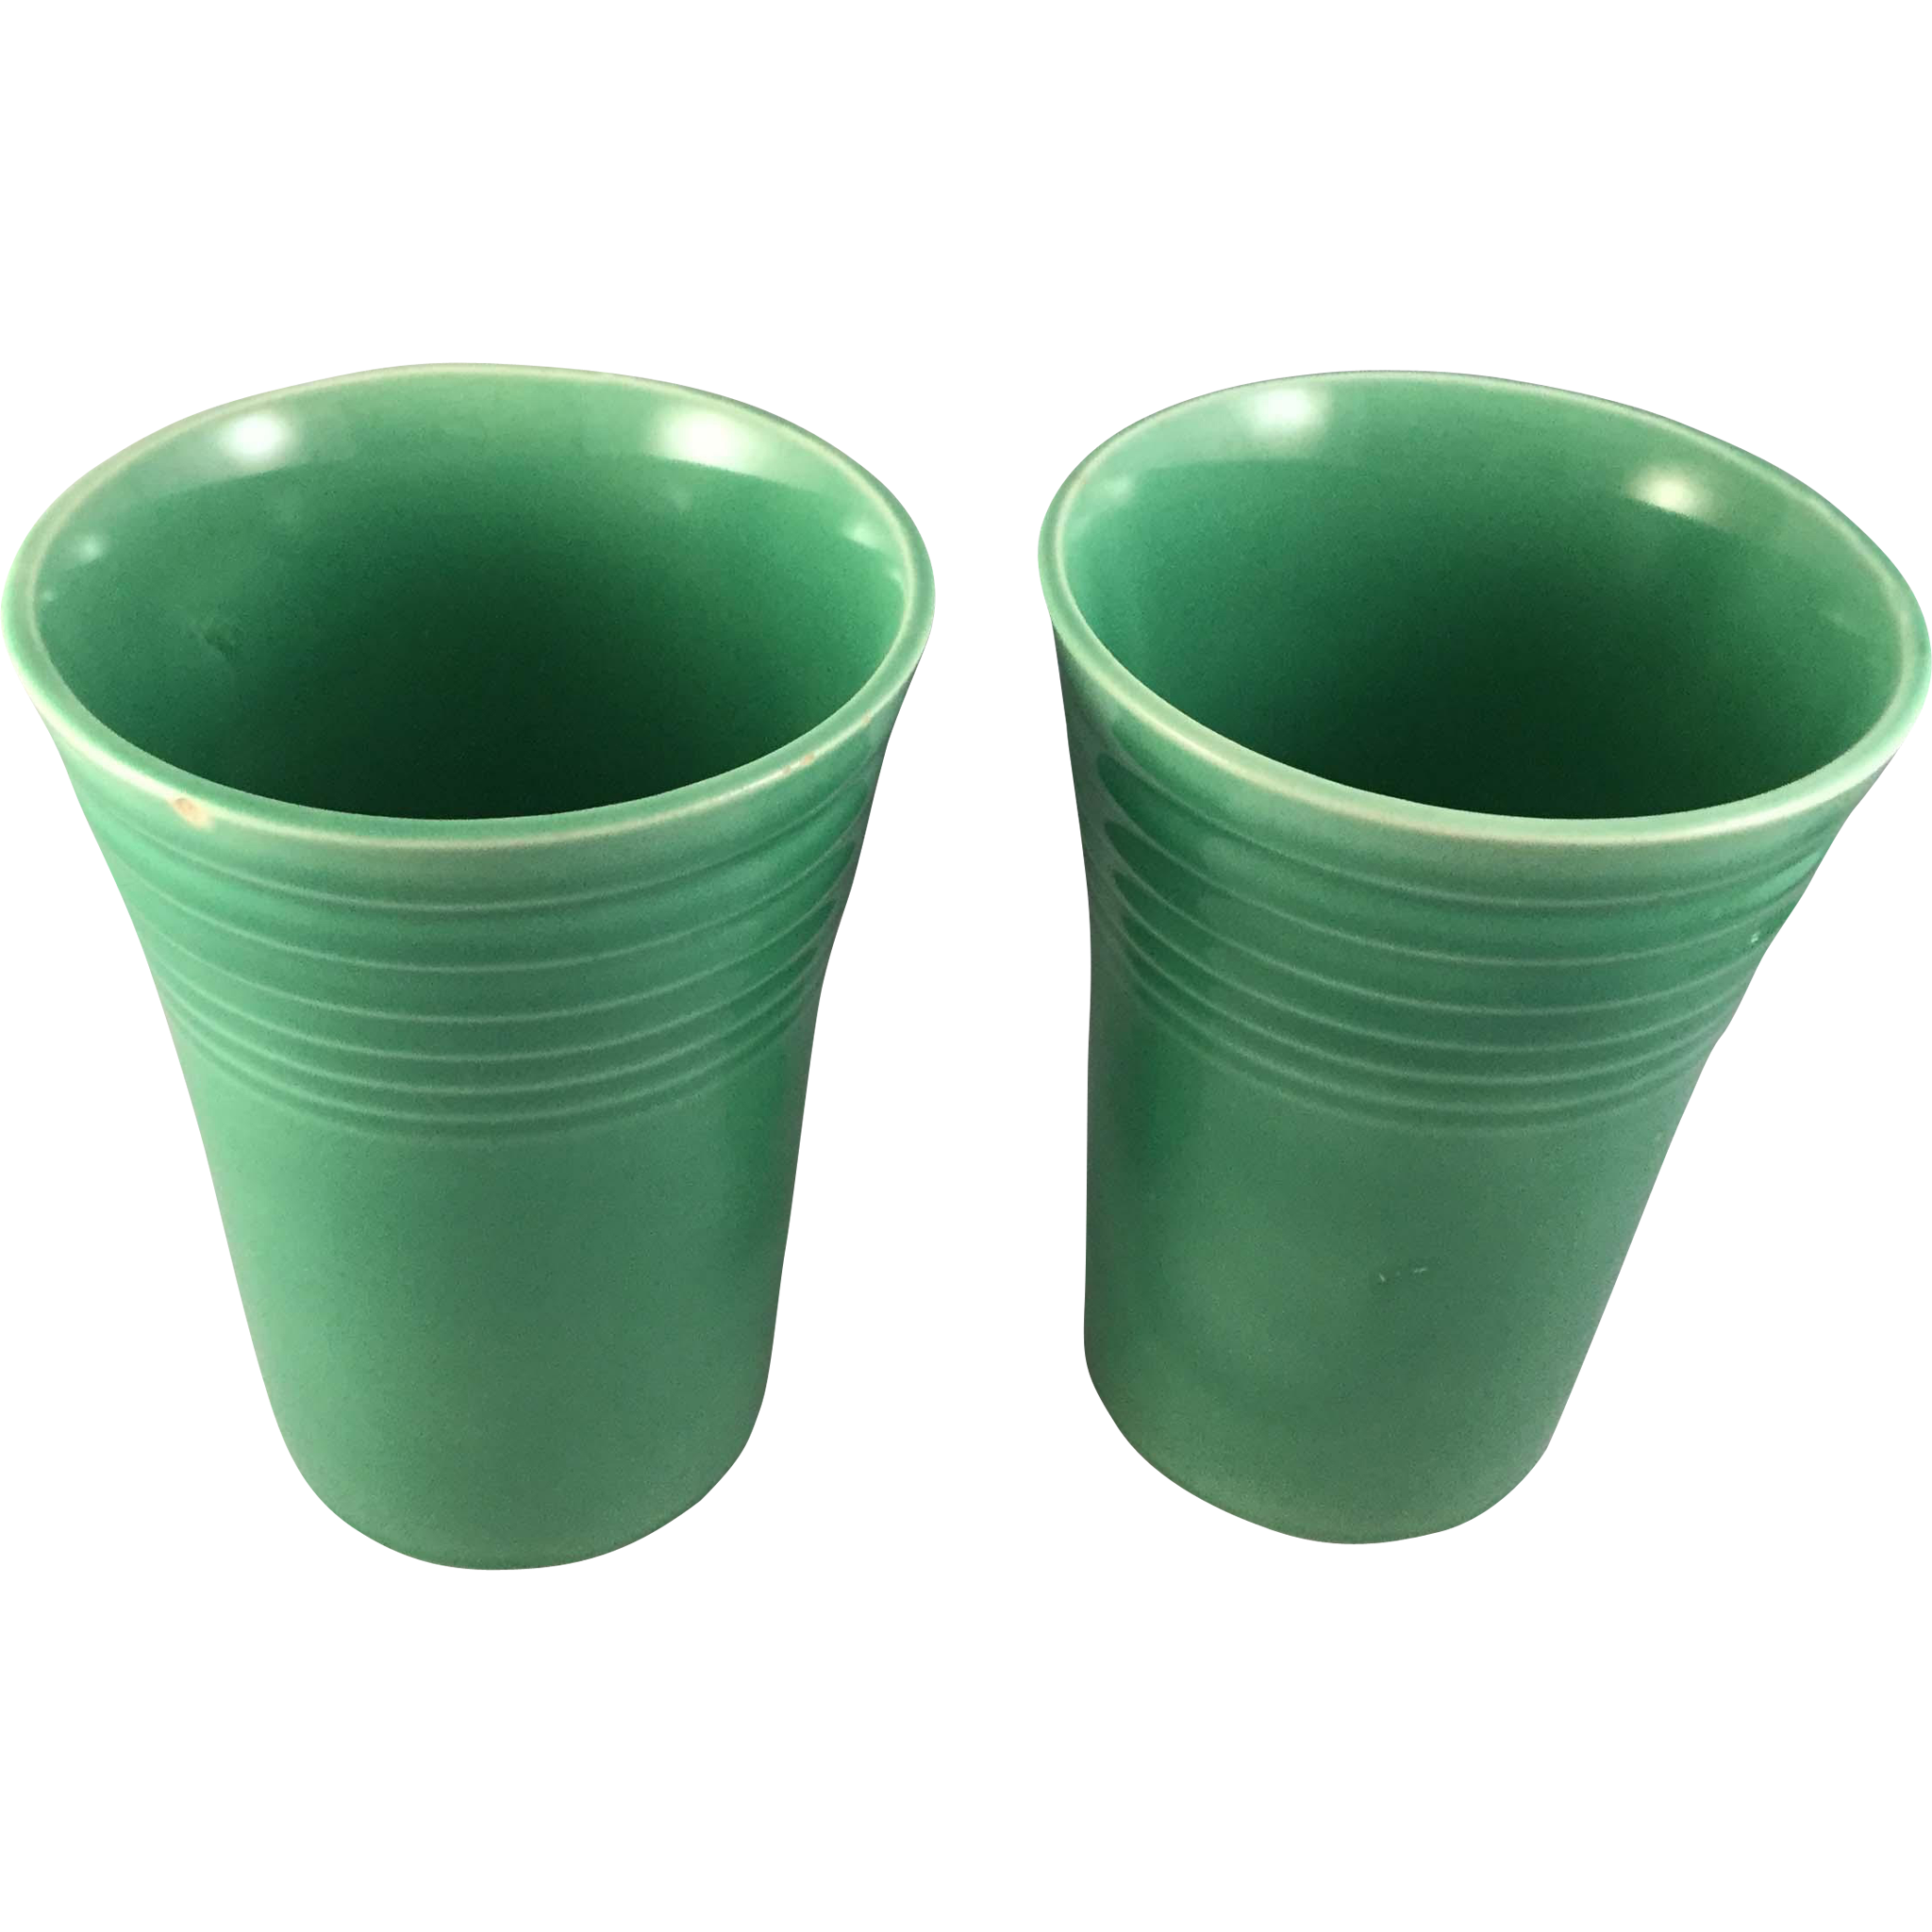 Vintage Fiesta Ware Water Tumblers Original Green, Lot of 2 (1937 – 1946)